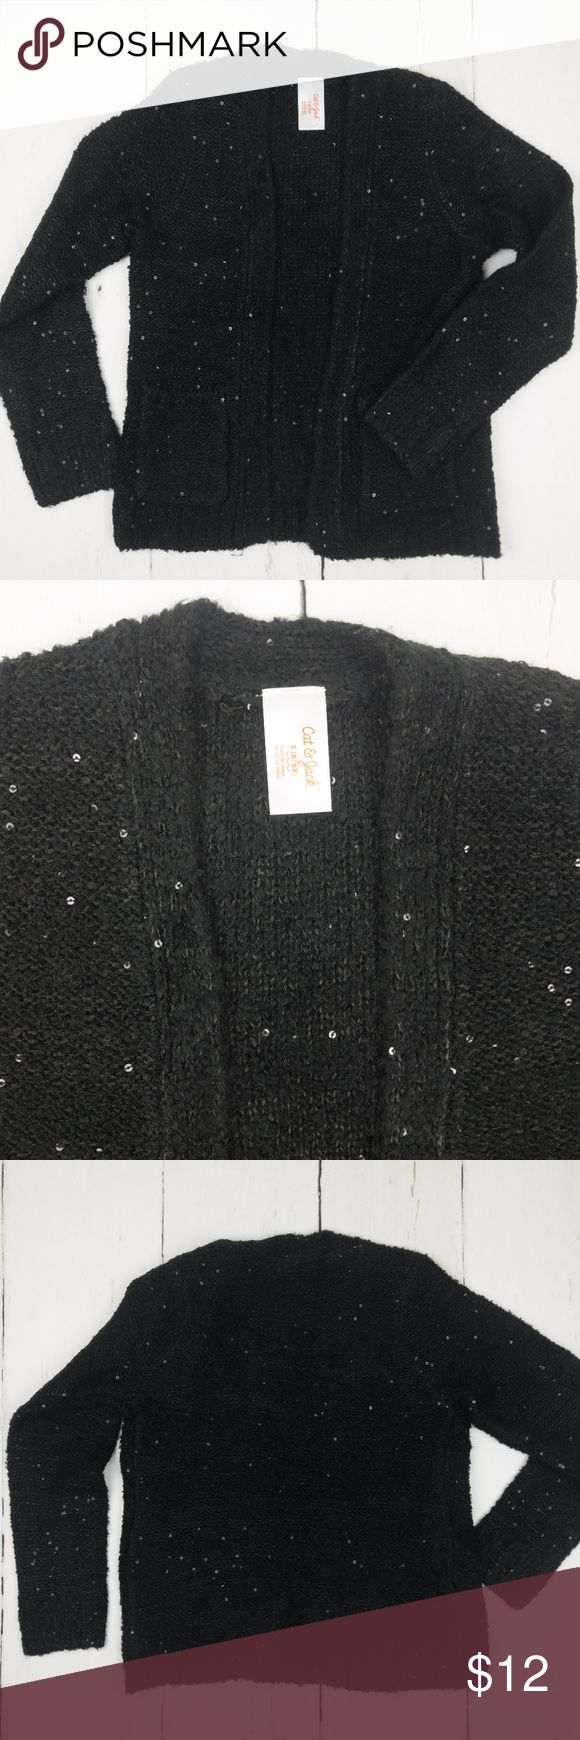 Girls Cat & Jack Black Sparkle Sweater Size 6 This black long sleeve sweater has sparkles on it and is from the Target line, Cat & Jack. It was only worn once, and has an open front with pockets. It falls to the hips and is a girls size 6/6X.  From Cat & Jack (Target brand). Girls Size 6/6X. 65% Acrylic, 35% Polyester. Cat & Jack Shirts & Tops Sweaters